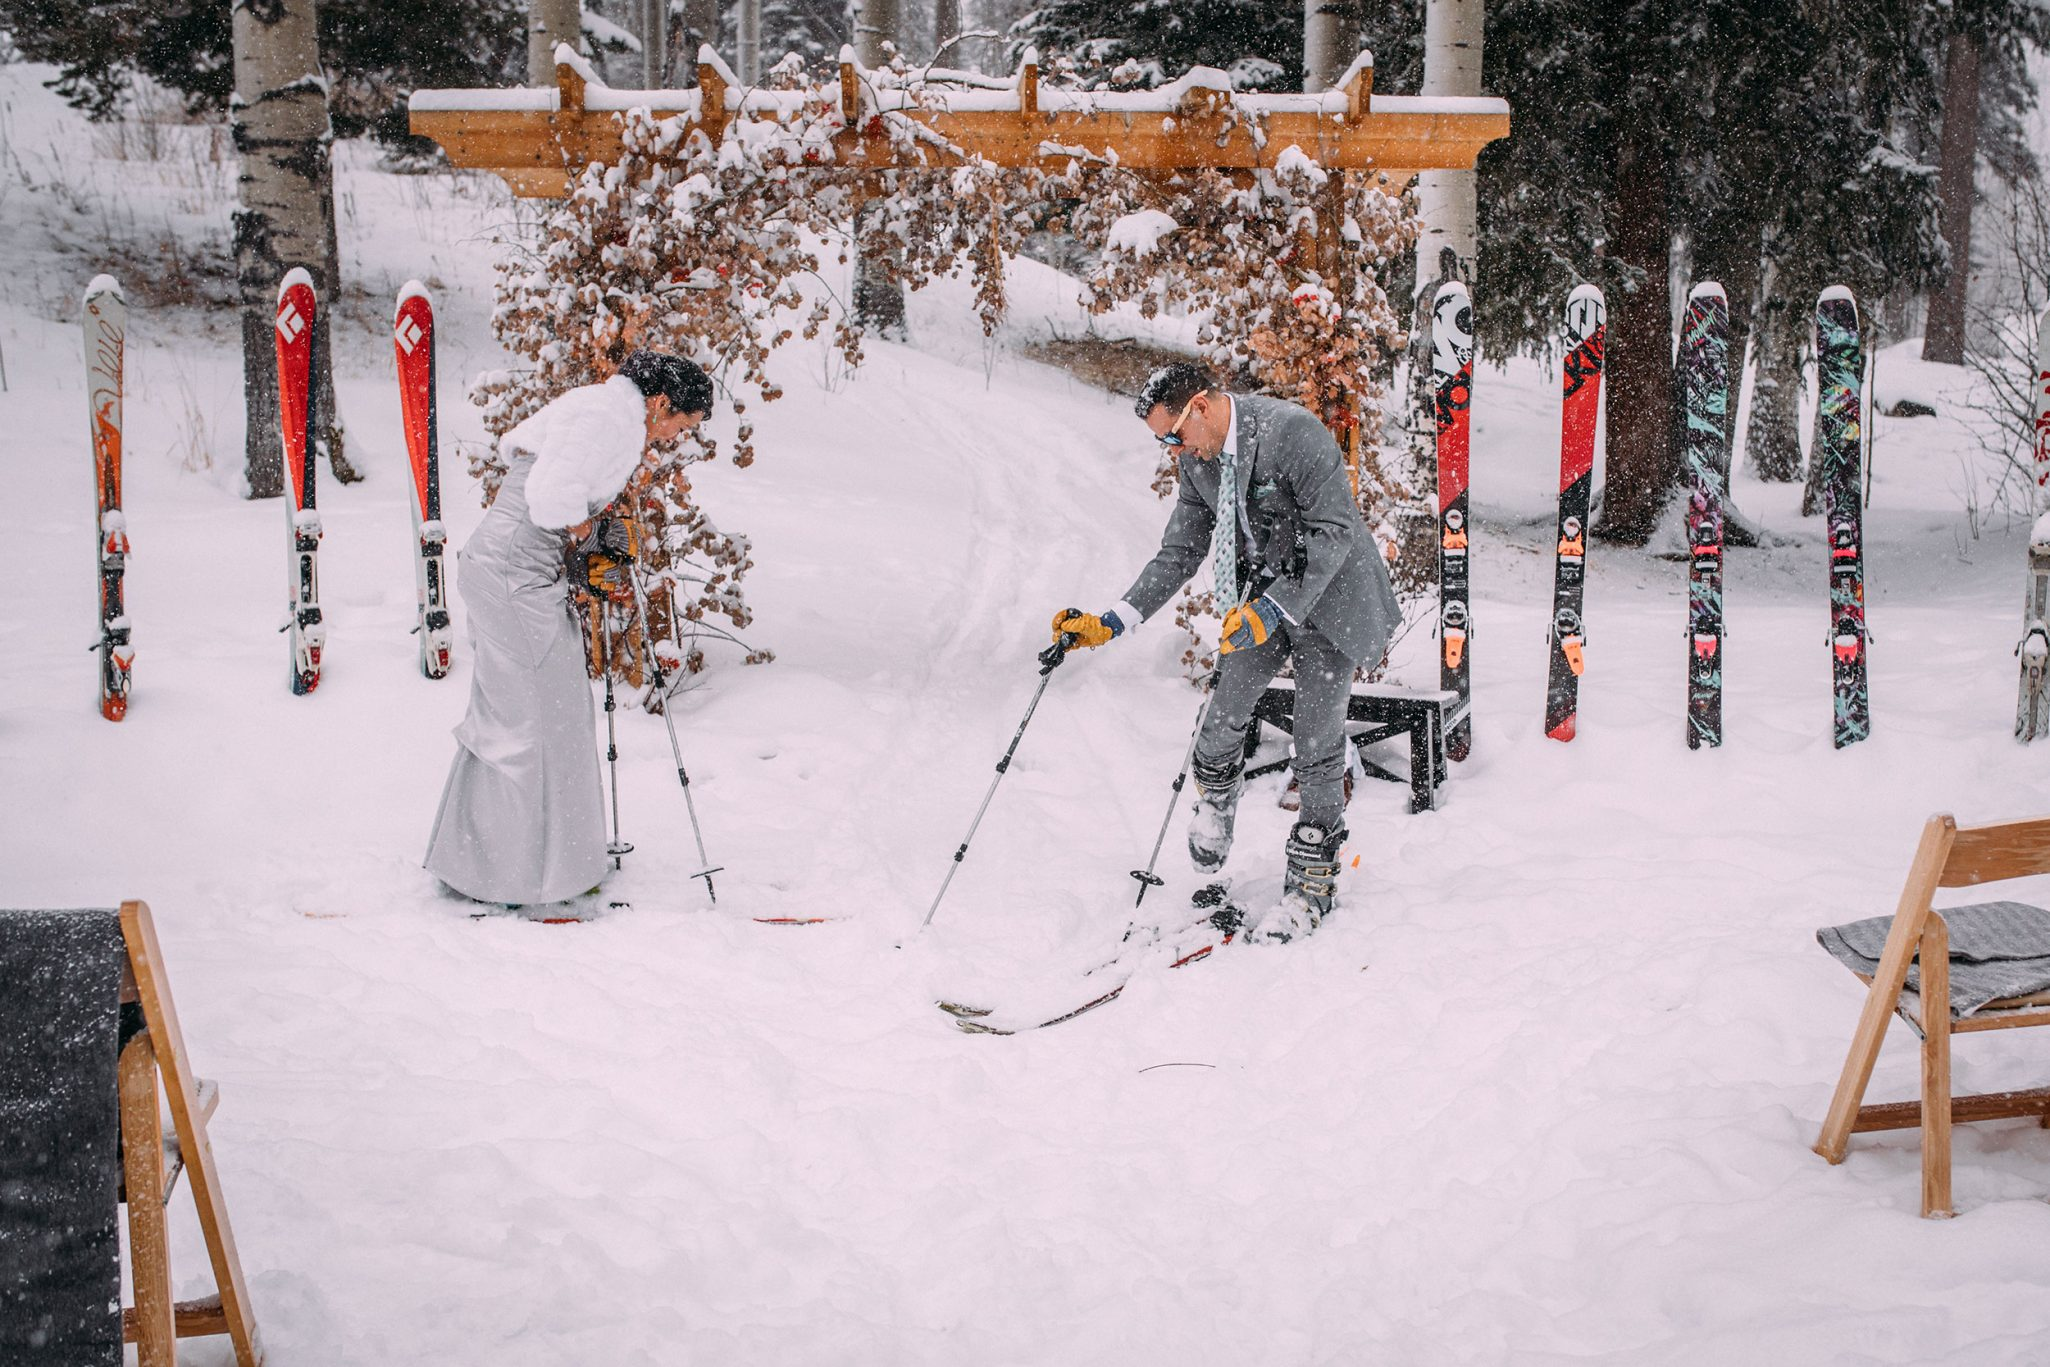 Ceremony in skis | A Winter Wedding in the Snow at Silverpick Lodge, Durango Colorado